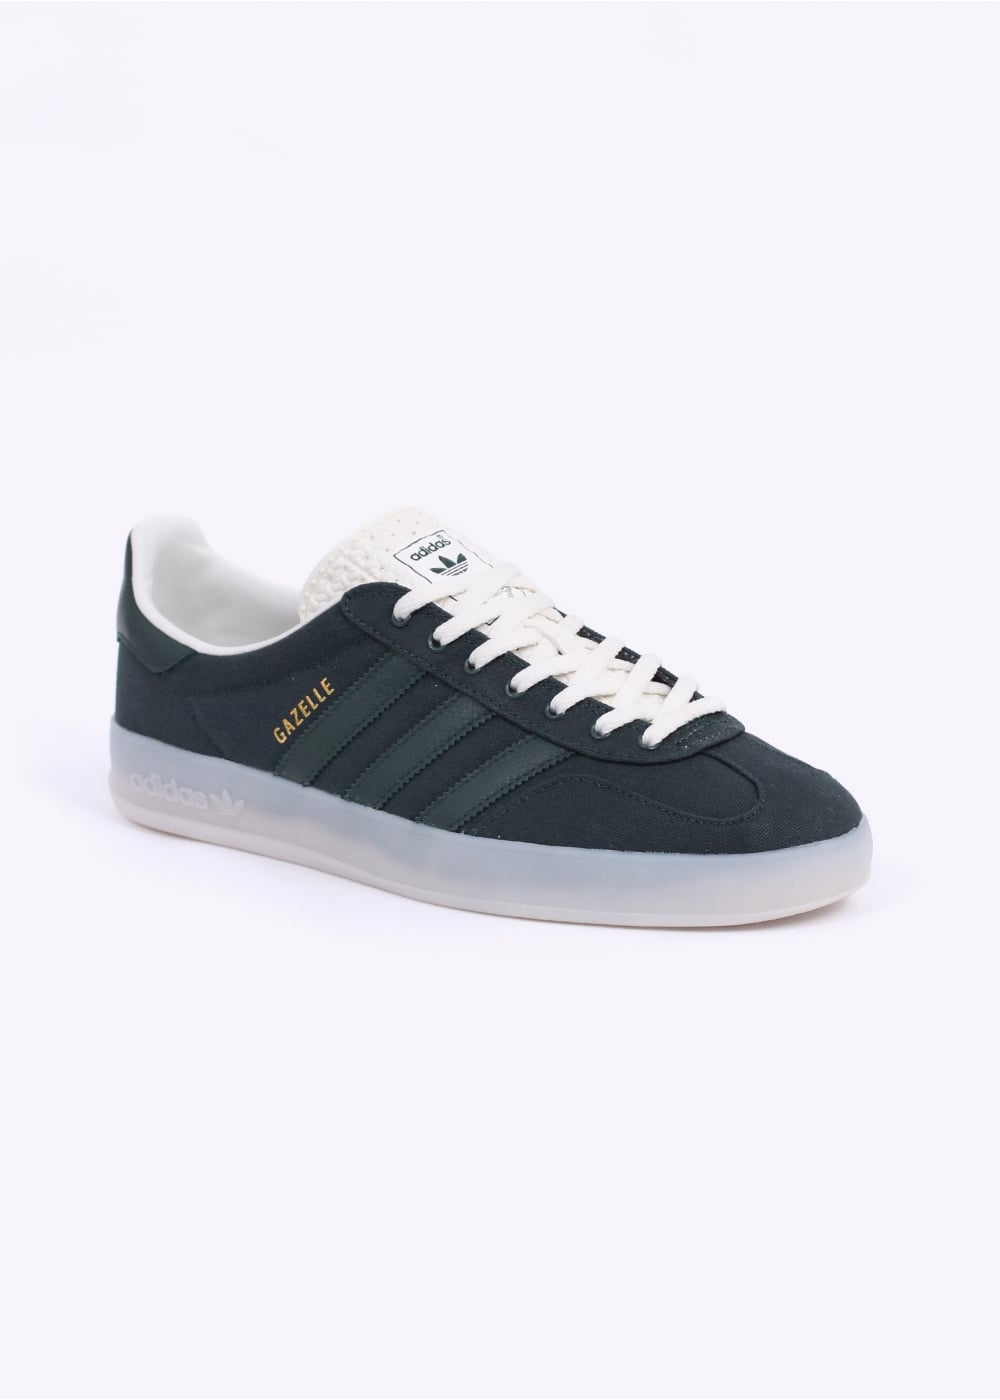 detailed pictures 6842a 1945a Gazelle Indoor Trainers - Mineral Green